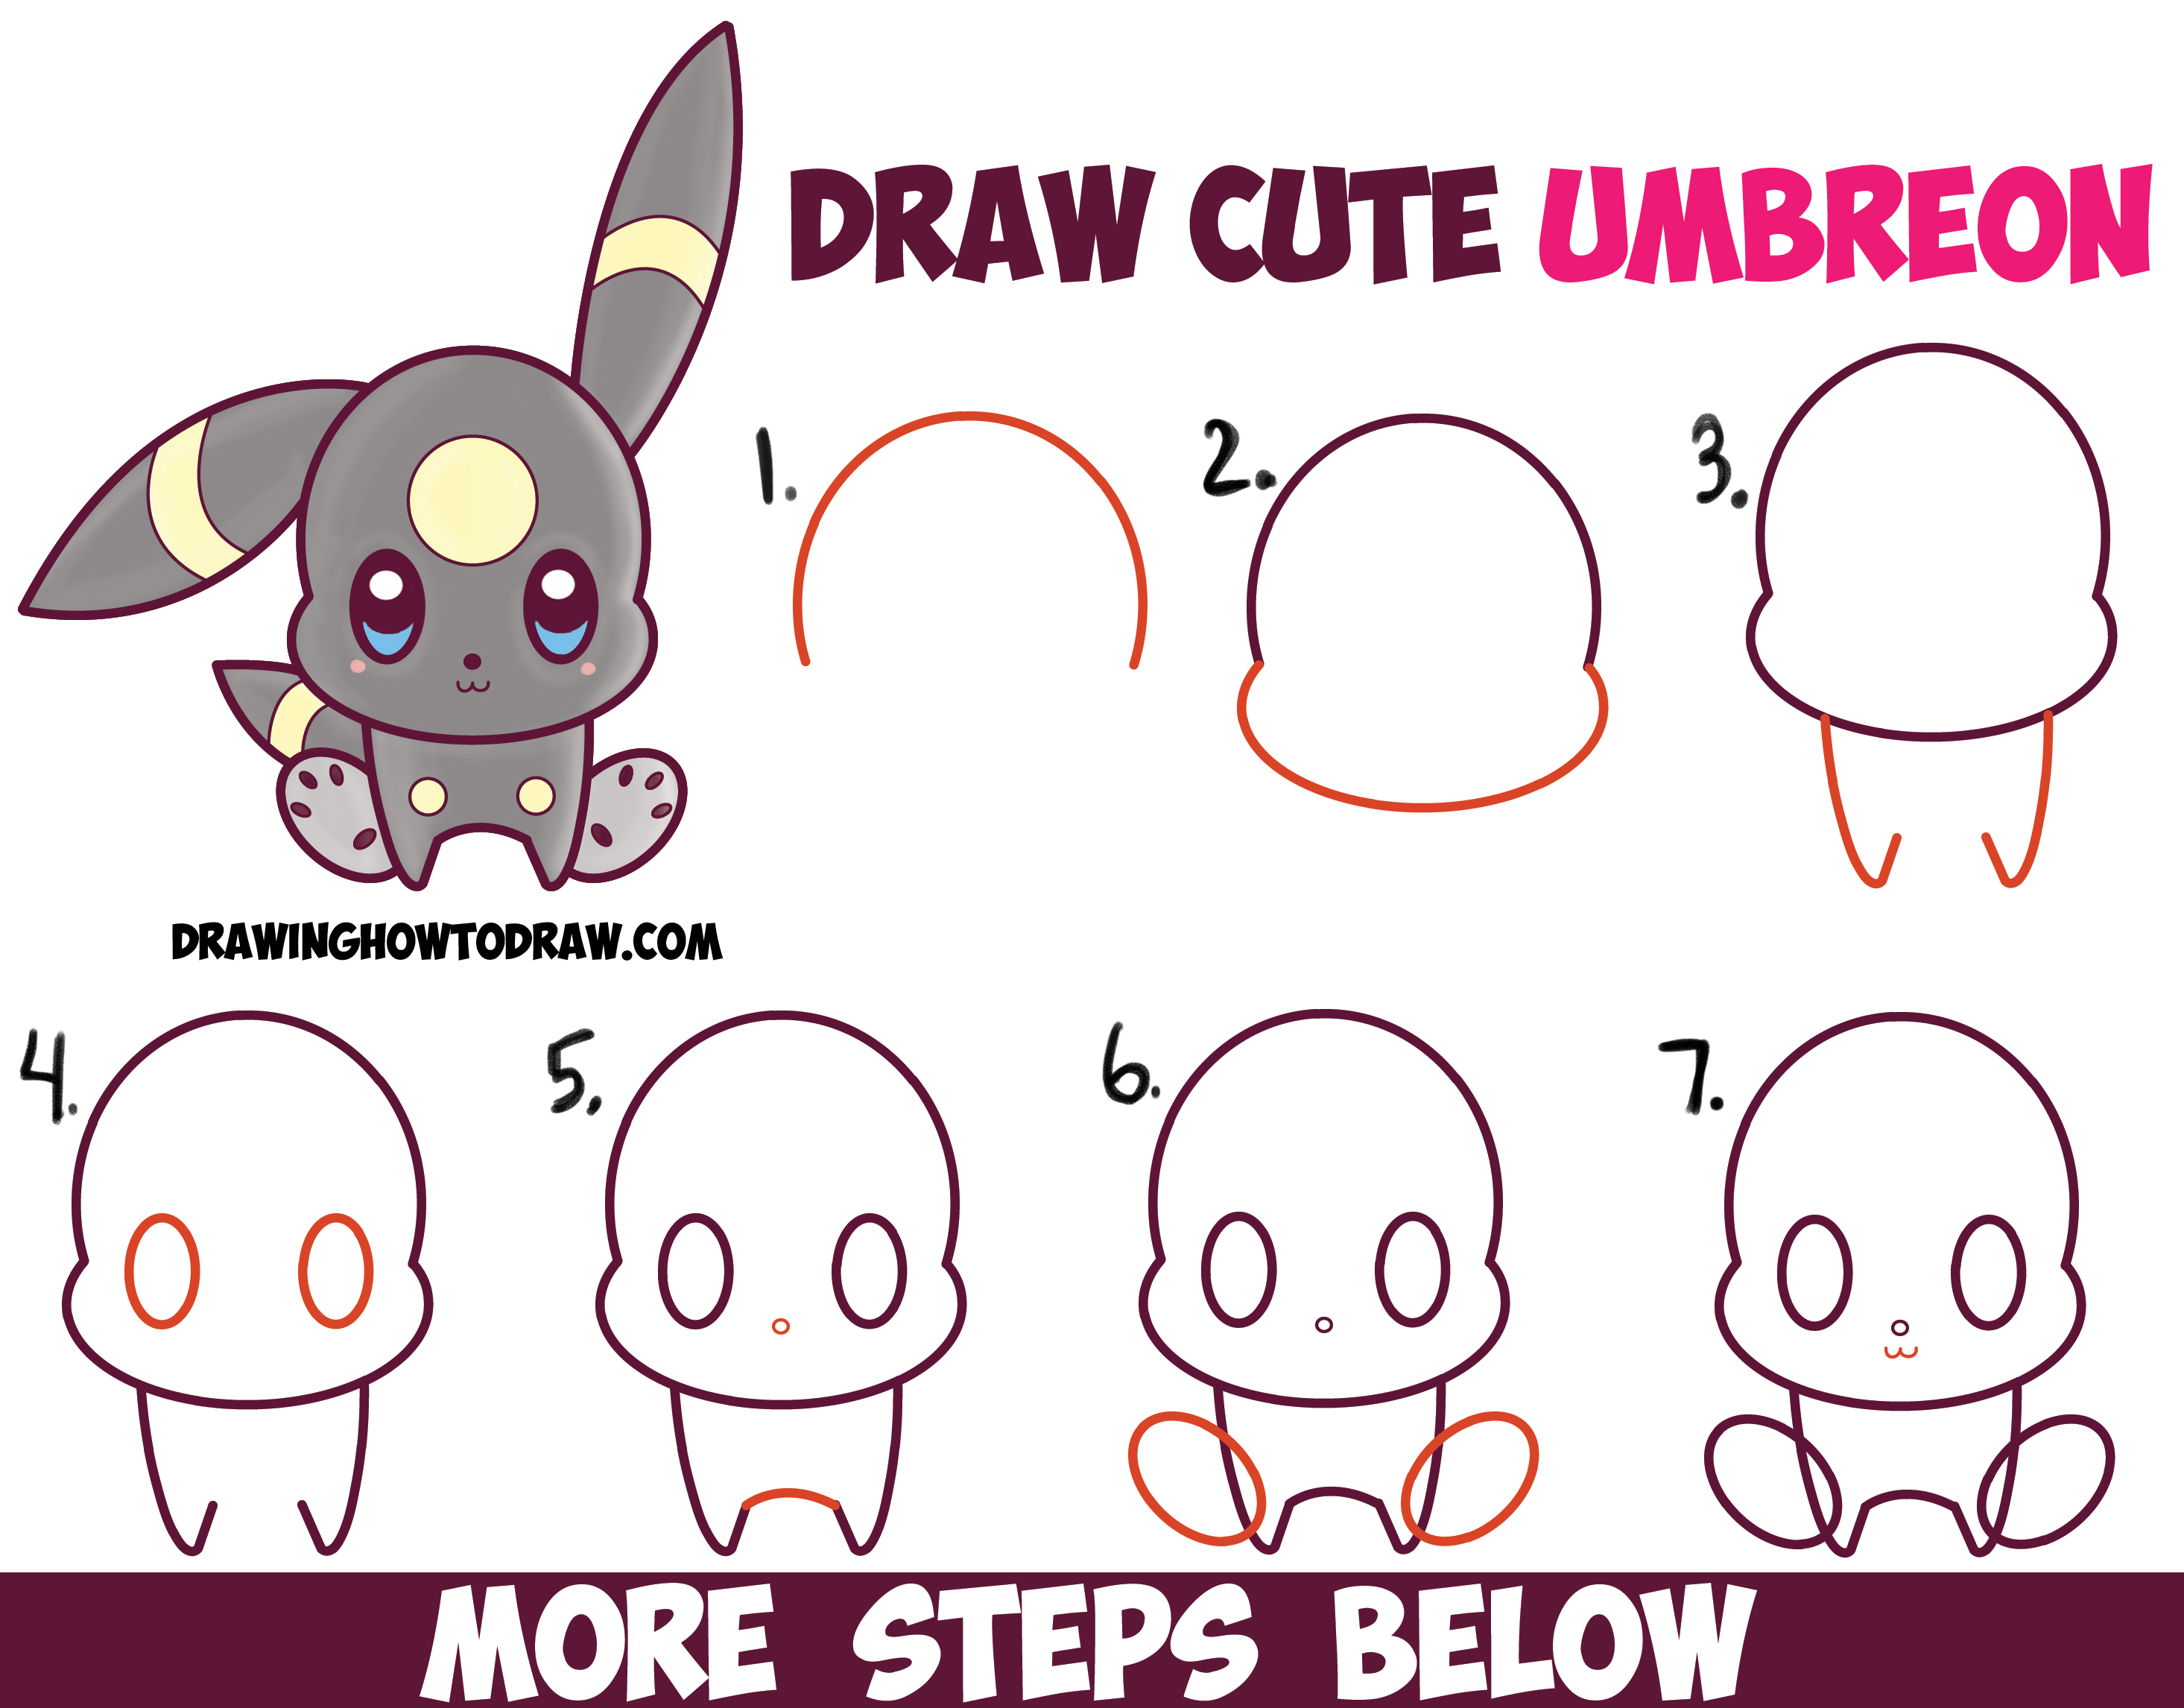 How to Draw Cute Kawaii Chibi Umbreon from Pokemon Easy Step by Step Drawing Tutorial for Kids